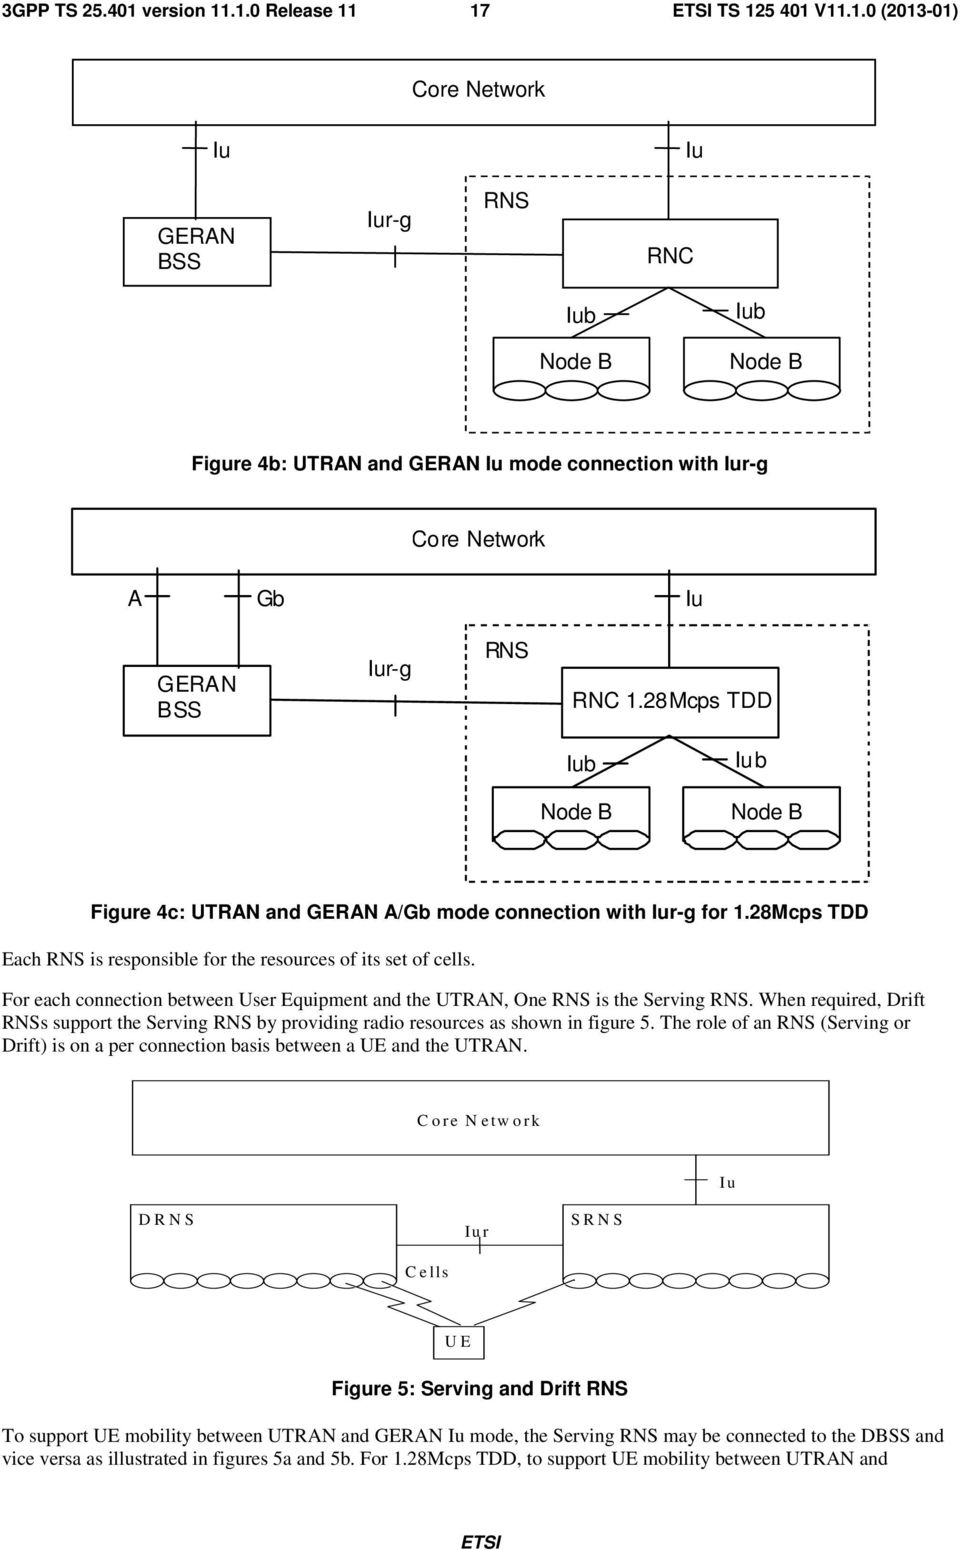 For each connection between User Equipment and the UTRAN, One RNS is the Serving RNS. When required, Drift RNSs support the Serving RNS by providing radio resources as shown in figure 5.